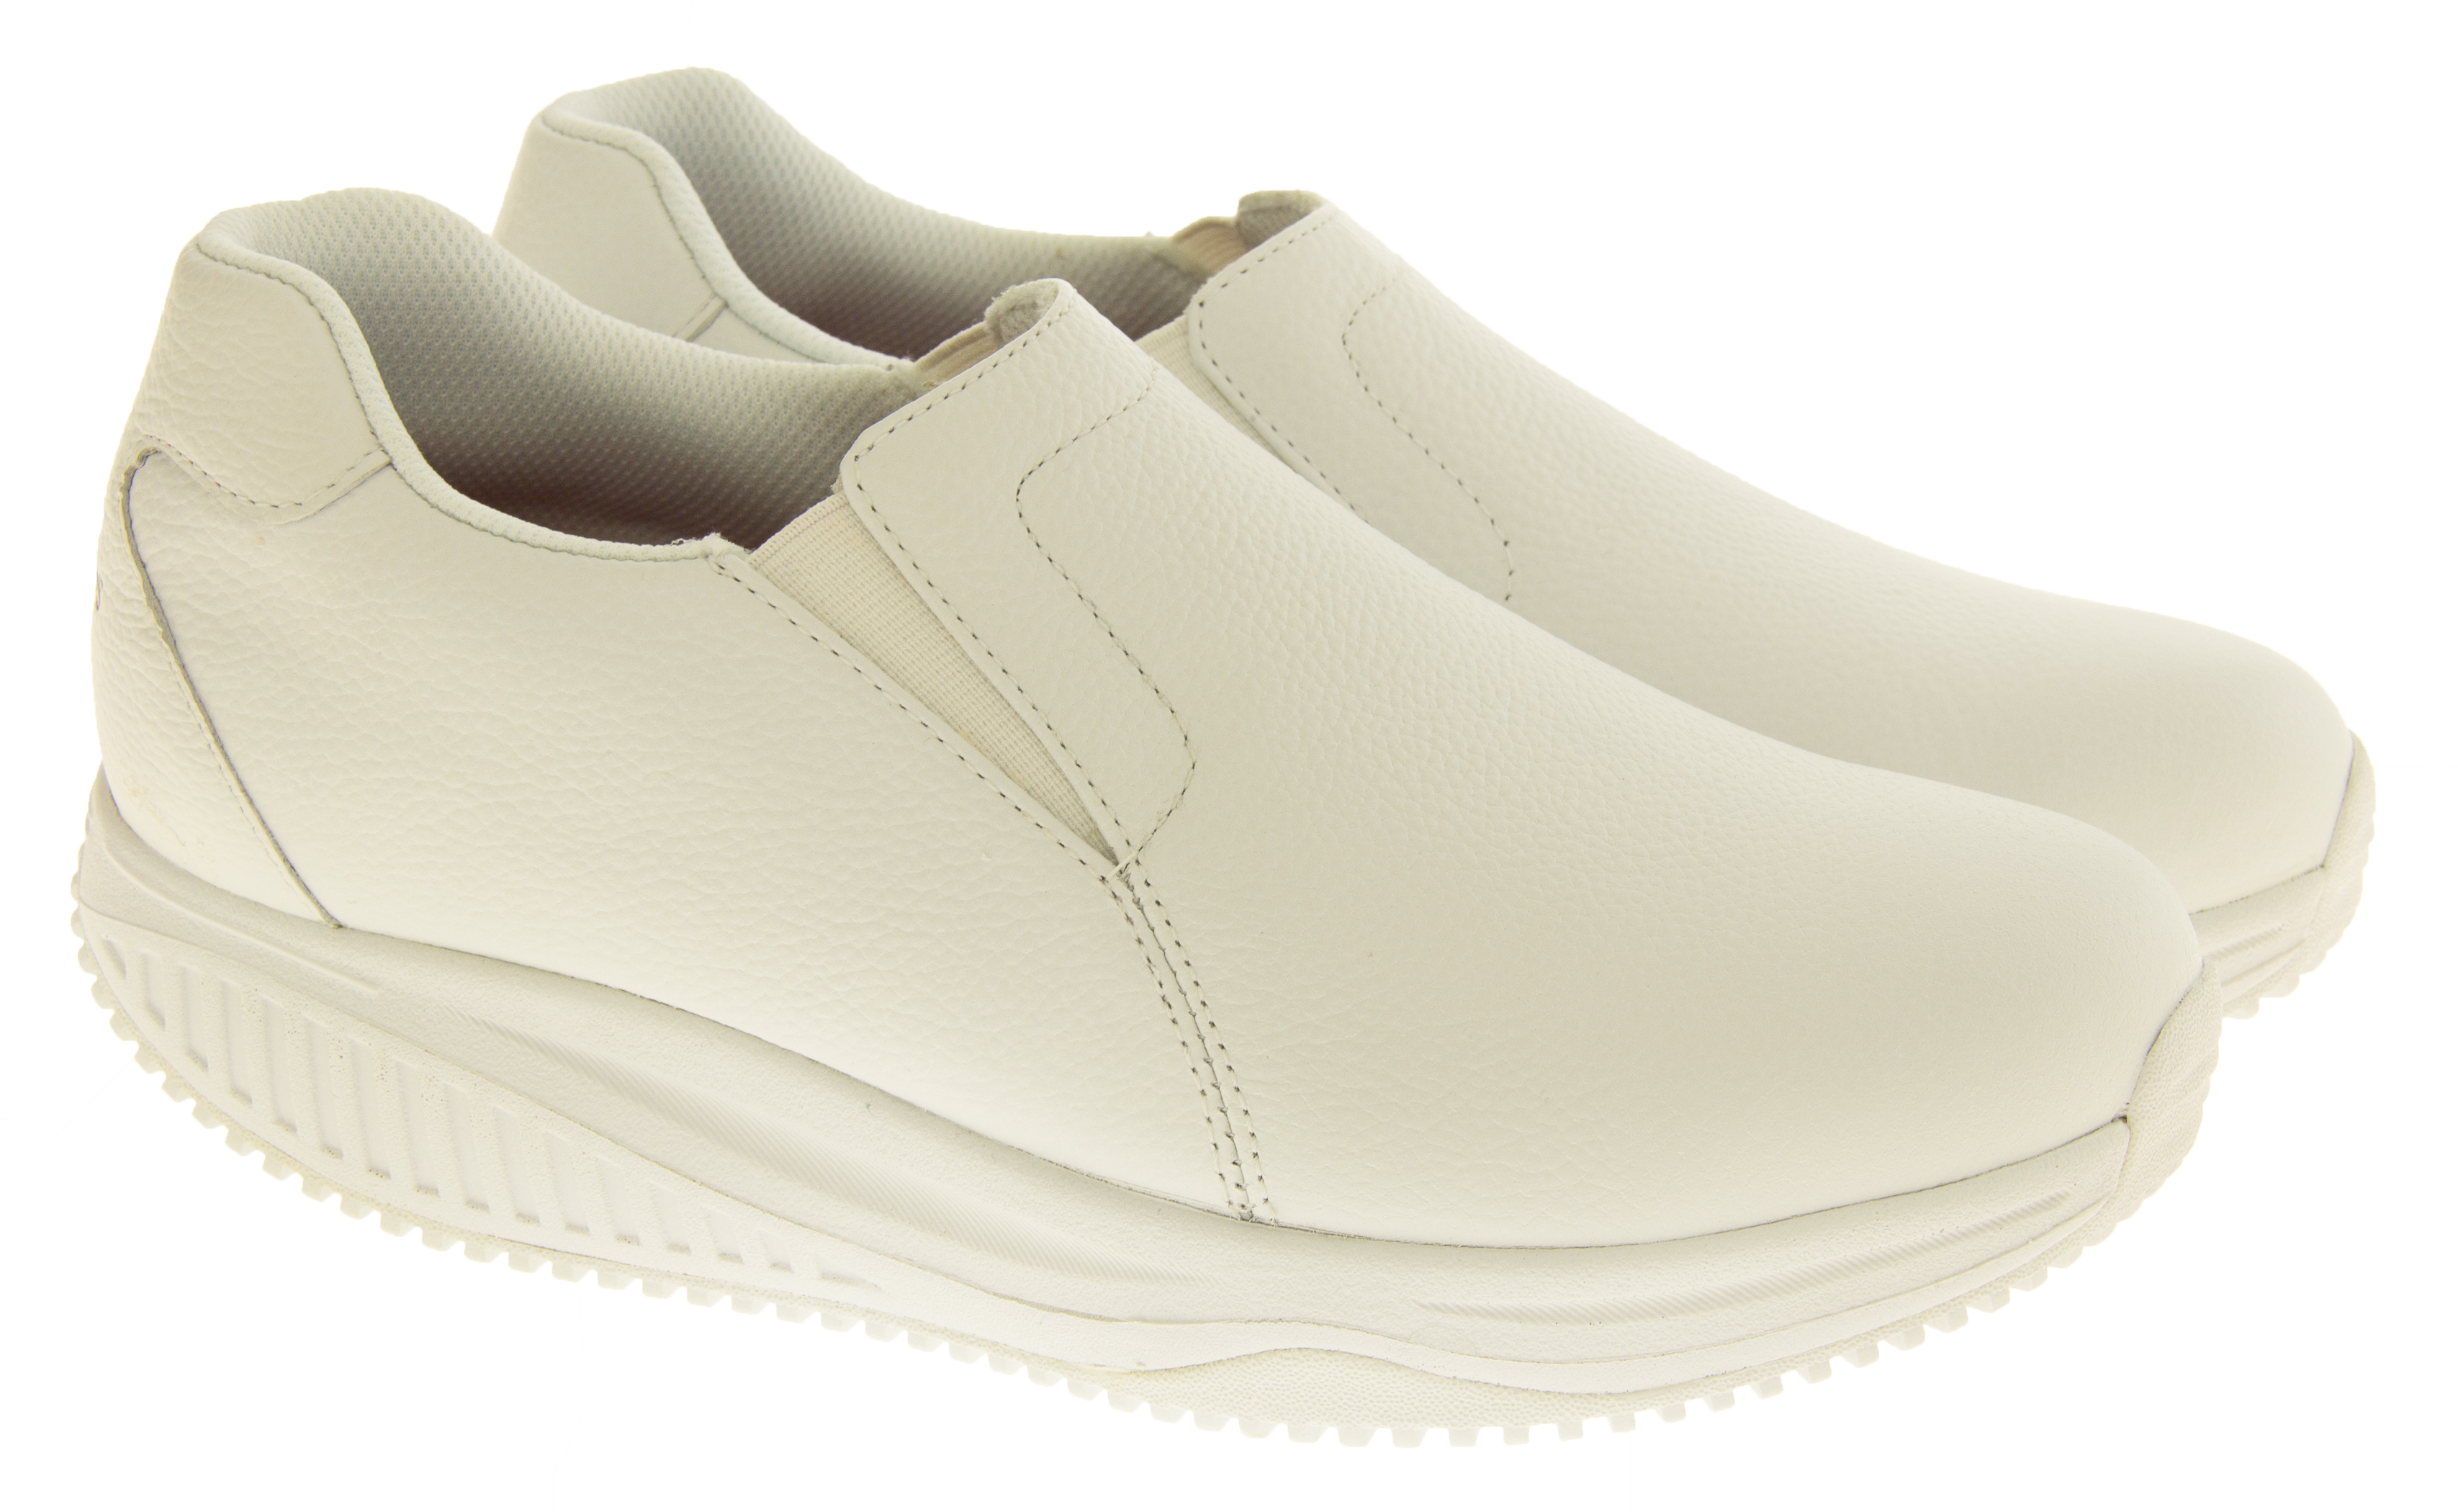 s skechers shape ups white leather slip resistant